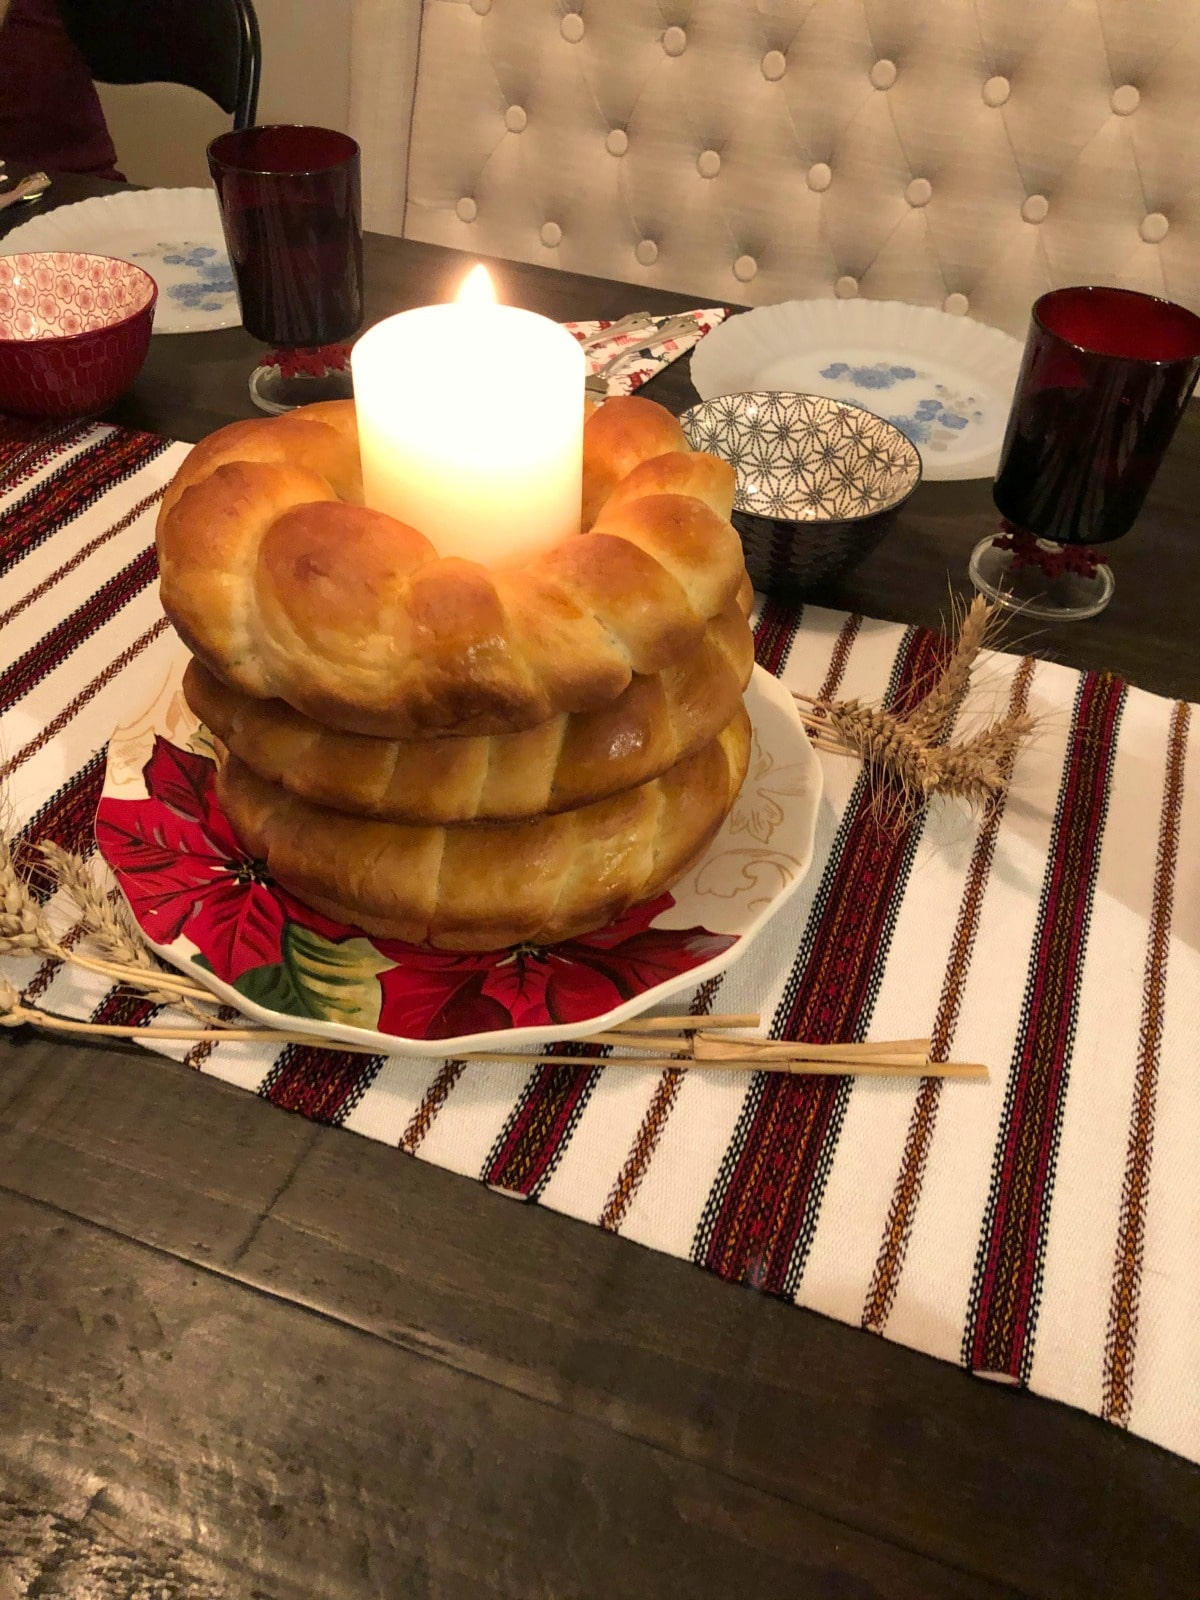 3 Kolach stacked, with a candle in the middle on a table with dinner plates and a striped red and white table runner